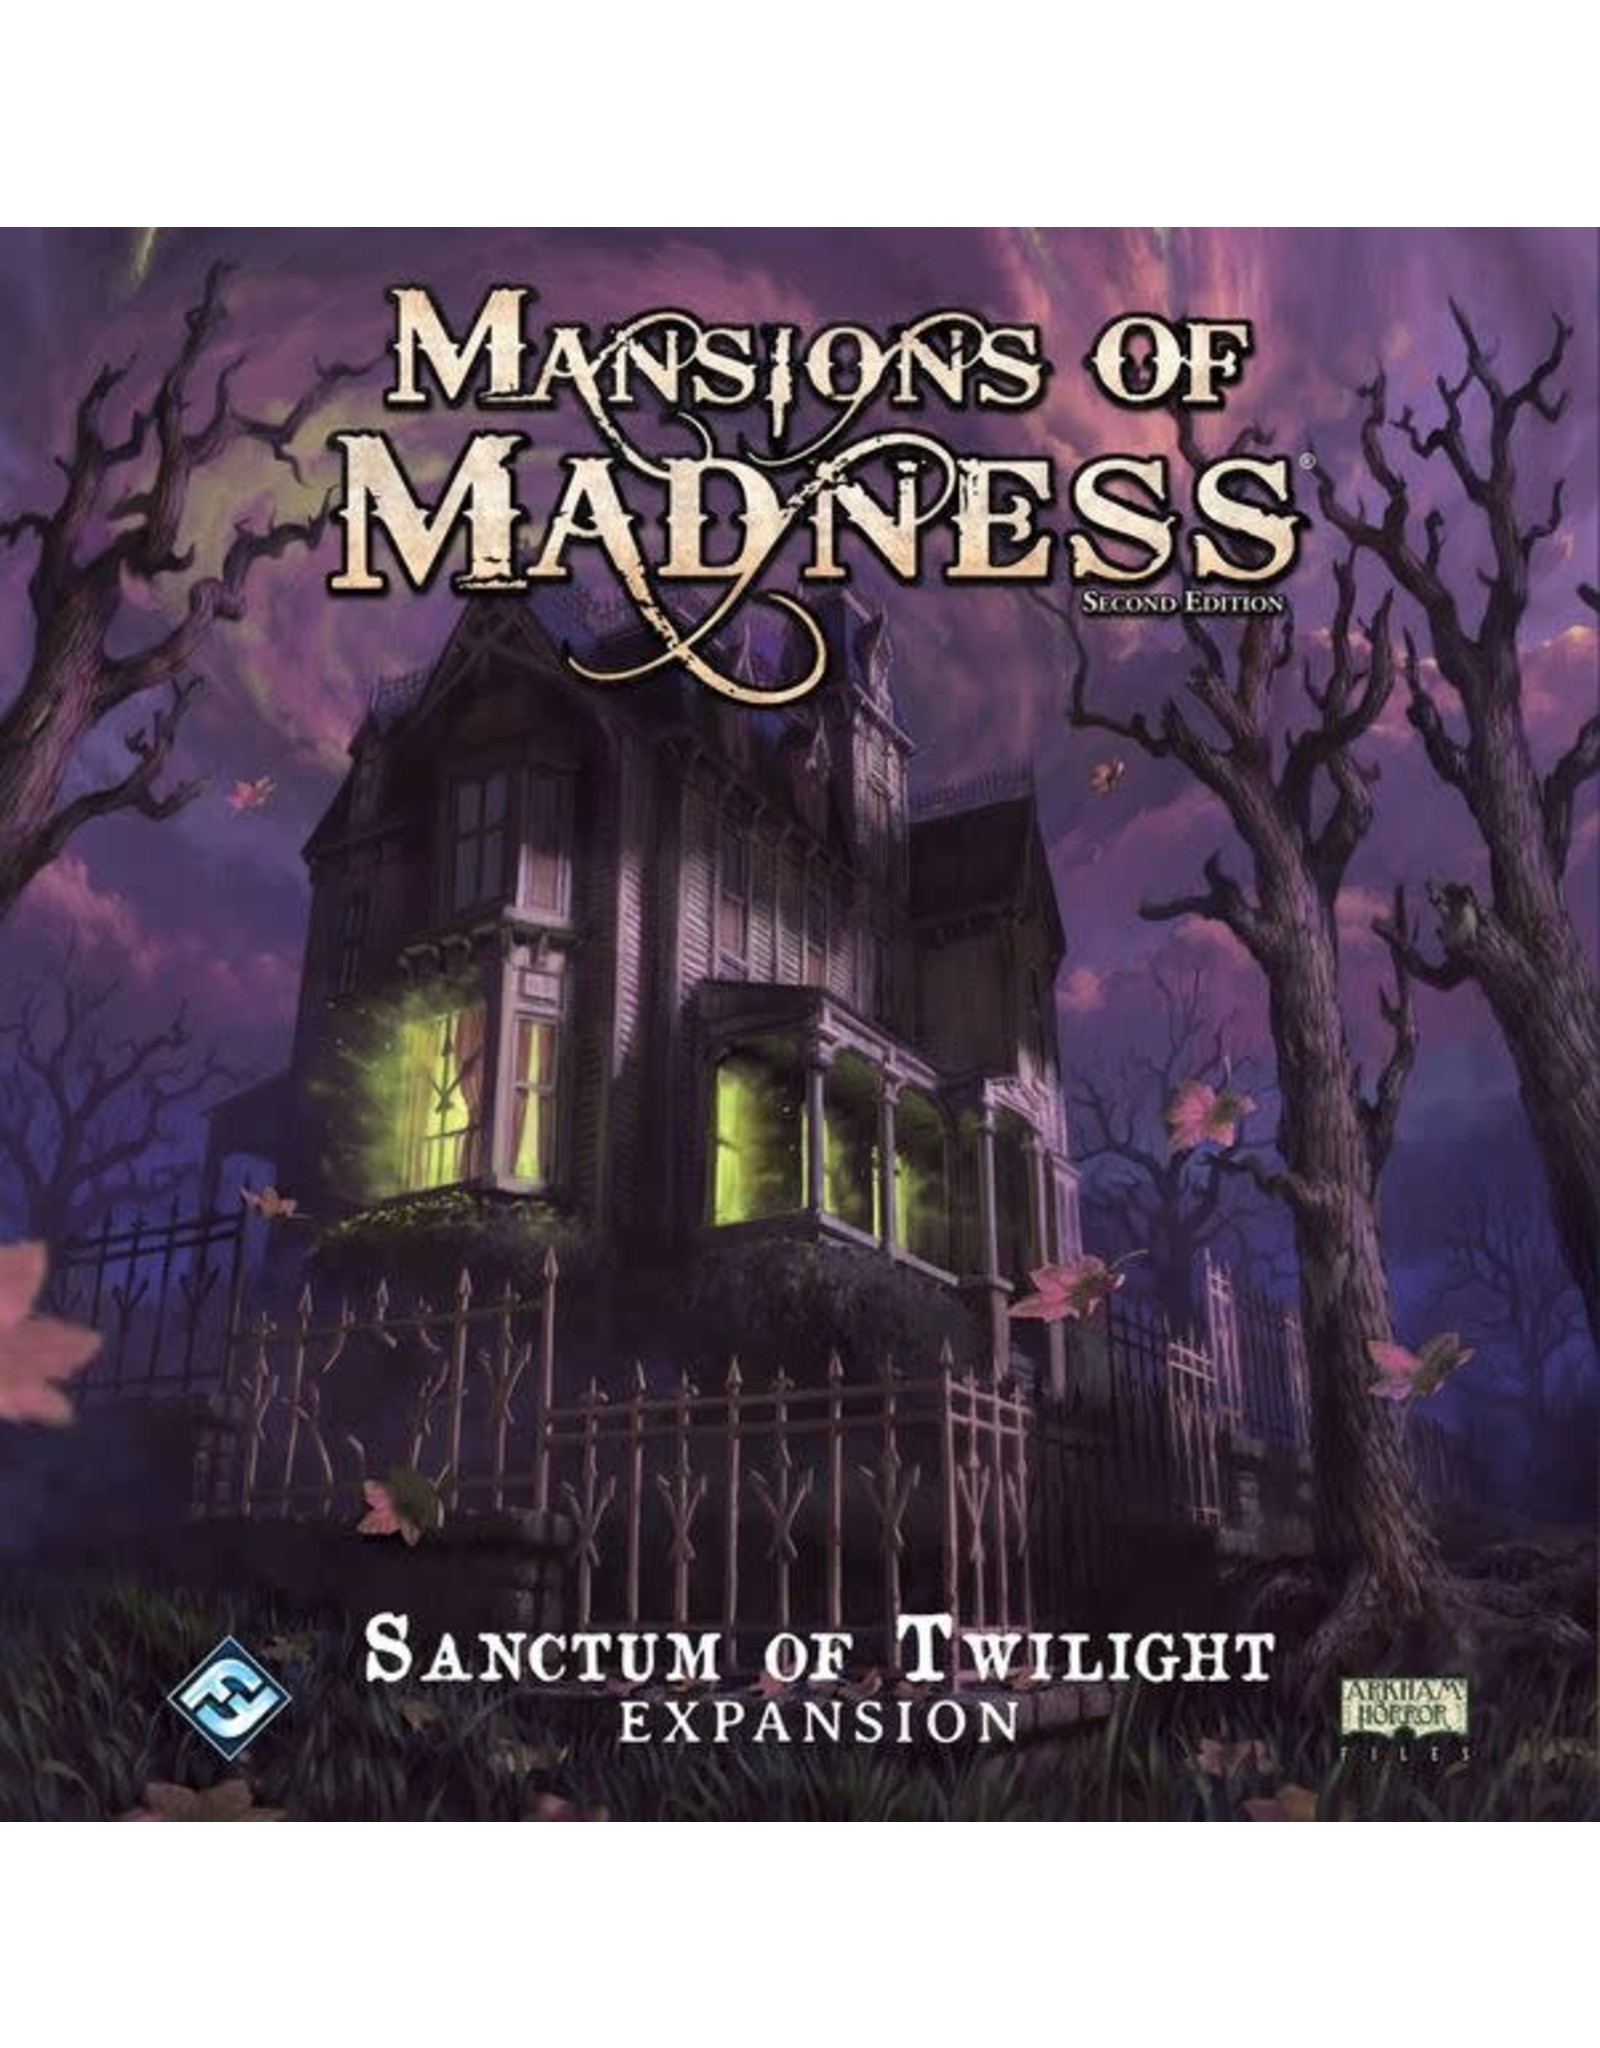 Mansions of Madness 2nd Edition: Sanctum of Twilight Expansion